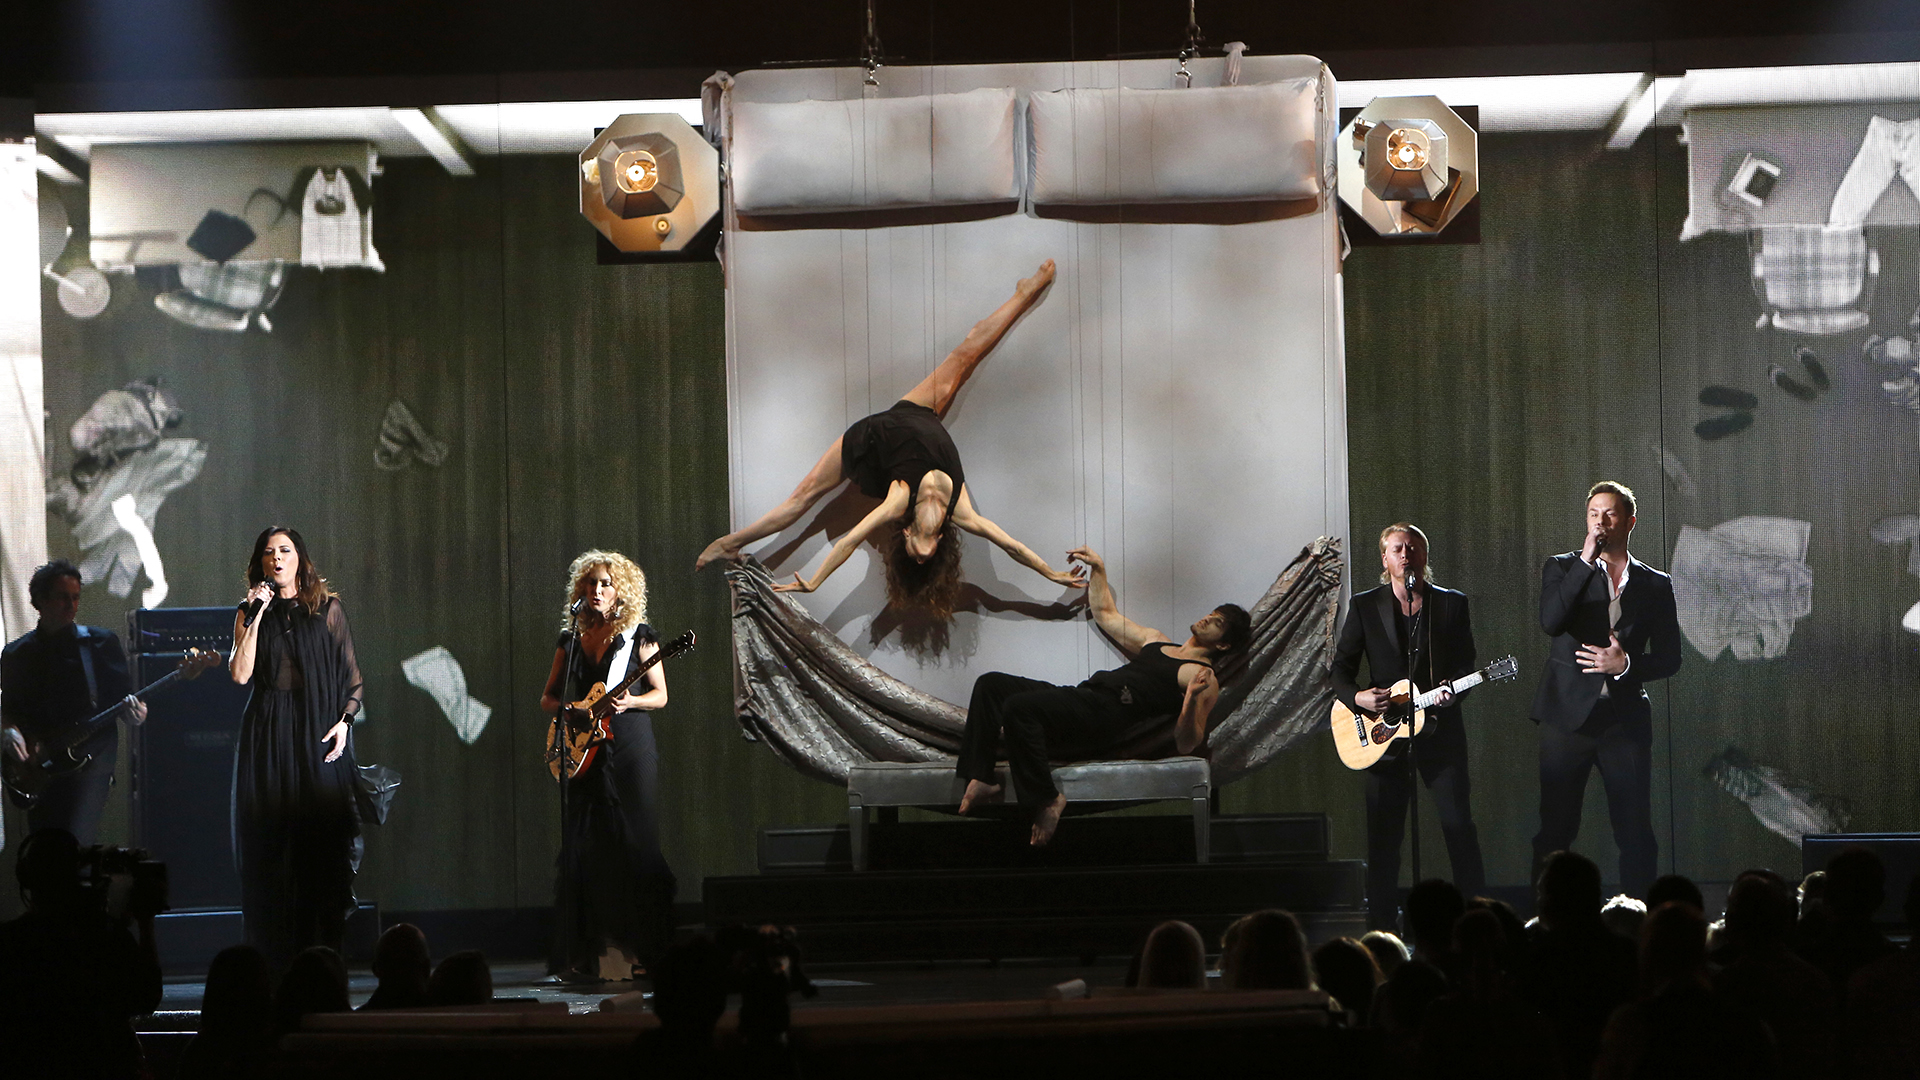 24. Little Big Town perform